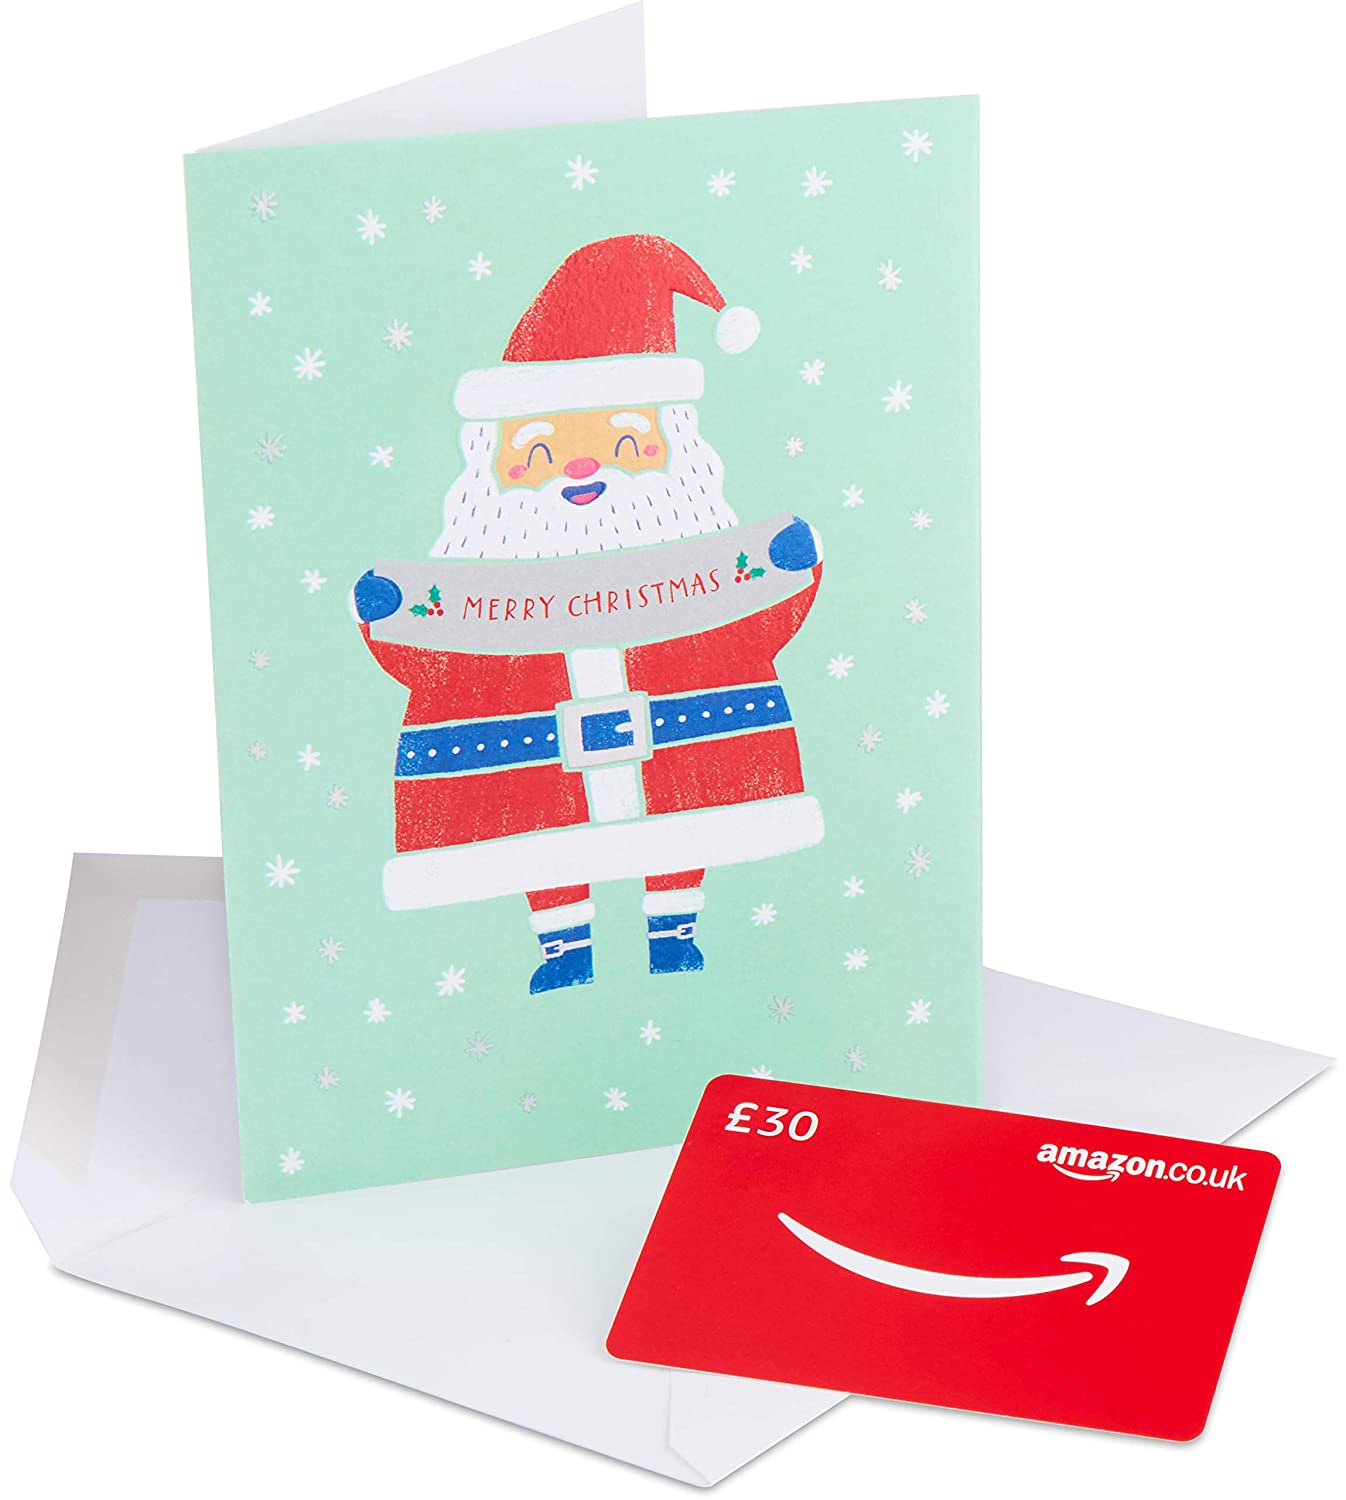 Amazon.co.uk Gift Card In a Premium Greeting Card - FREE One-Day Delivery Amazon EU S.à.r.l. Fixed